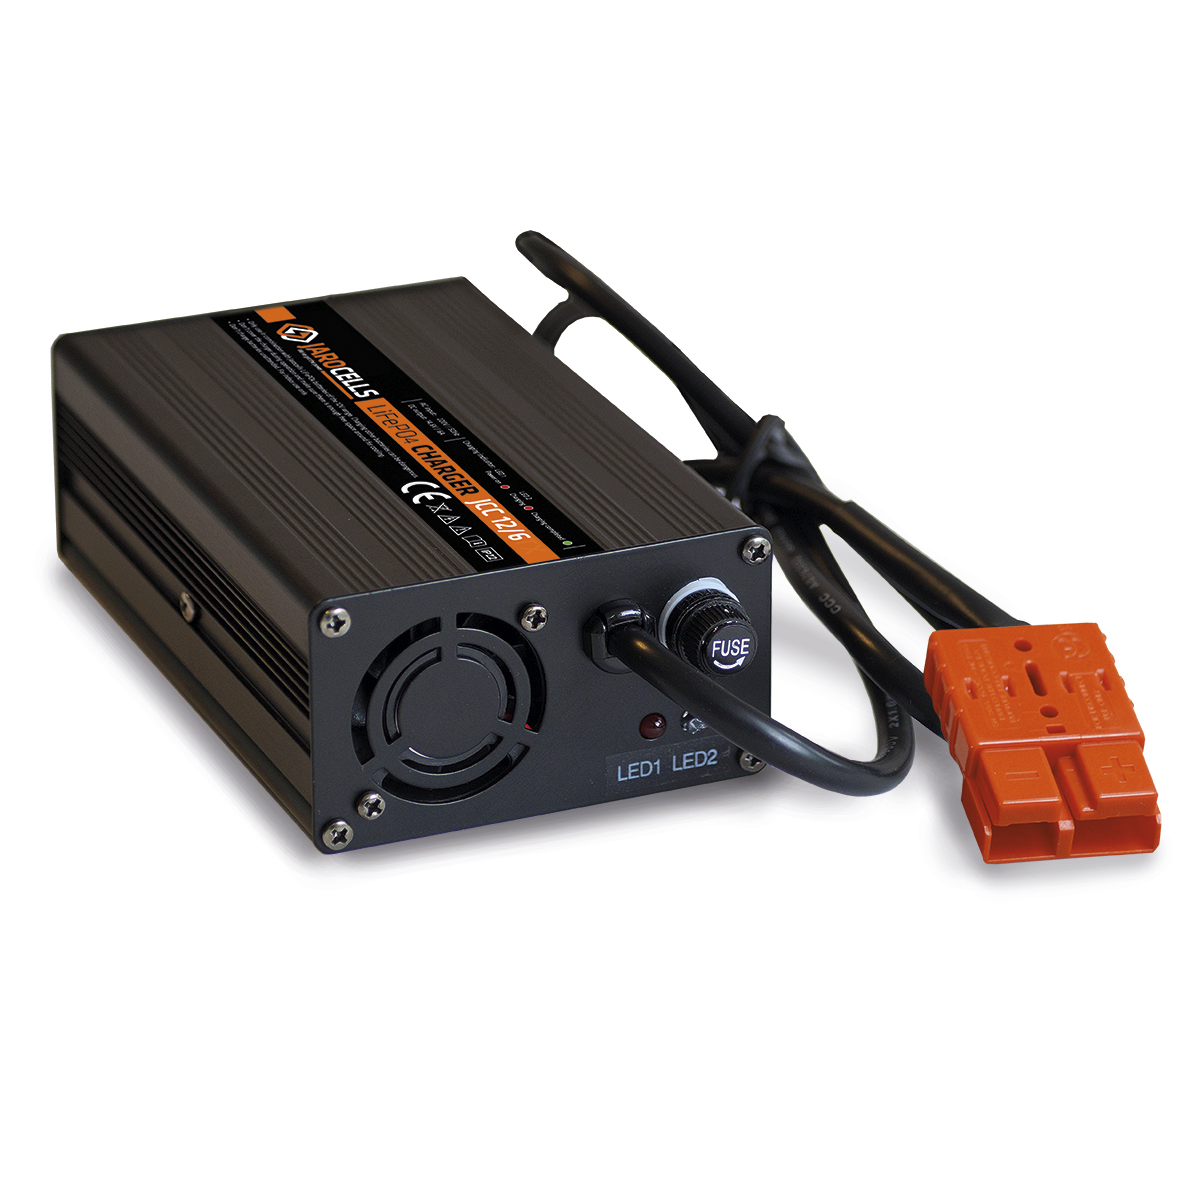 JAROCELLS 12V 6A LITHIUM CHARGER IP22